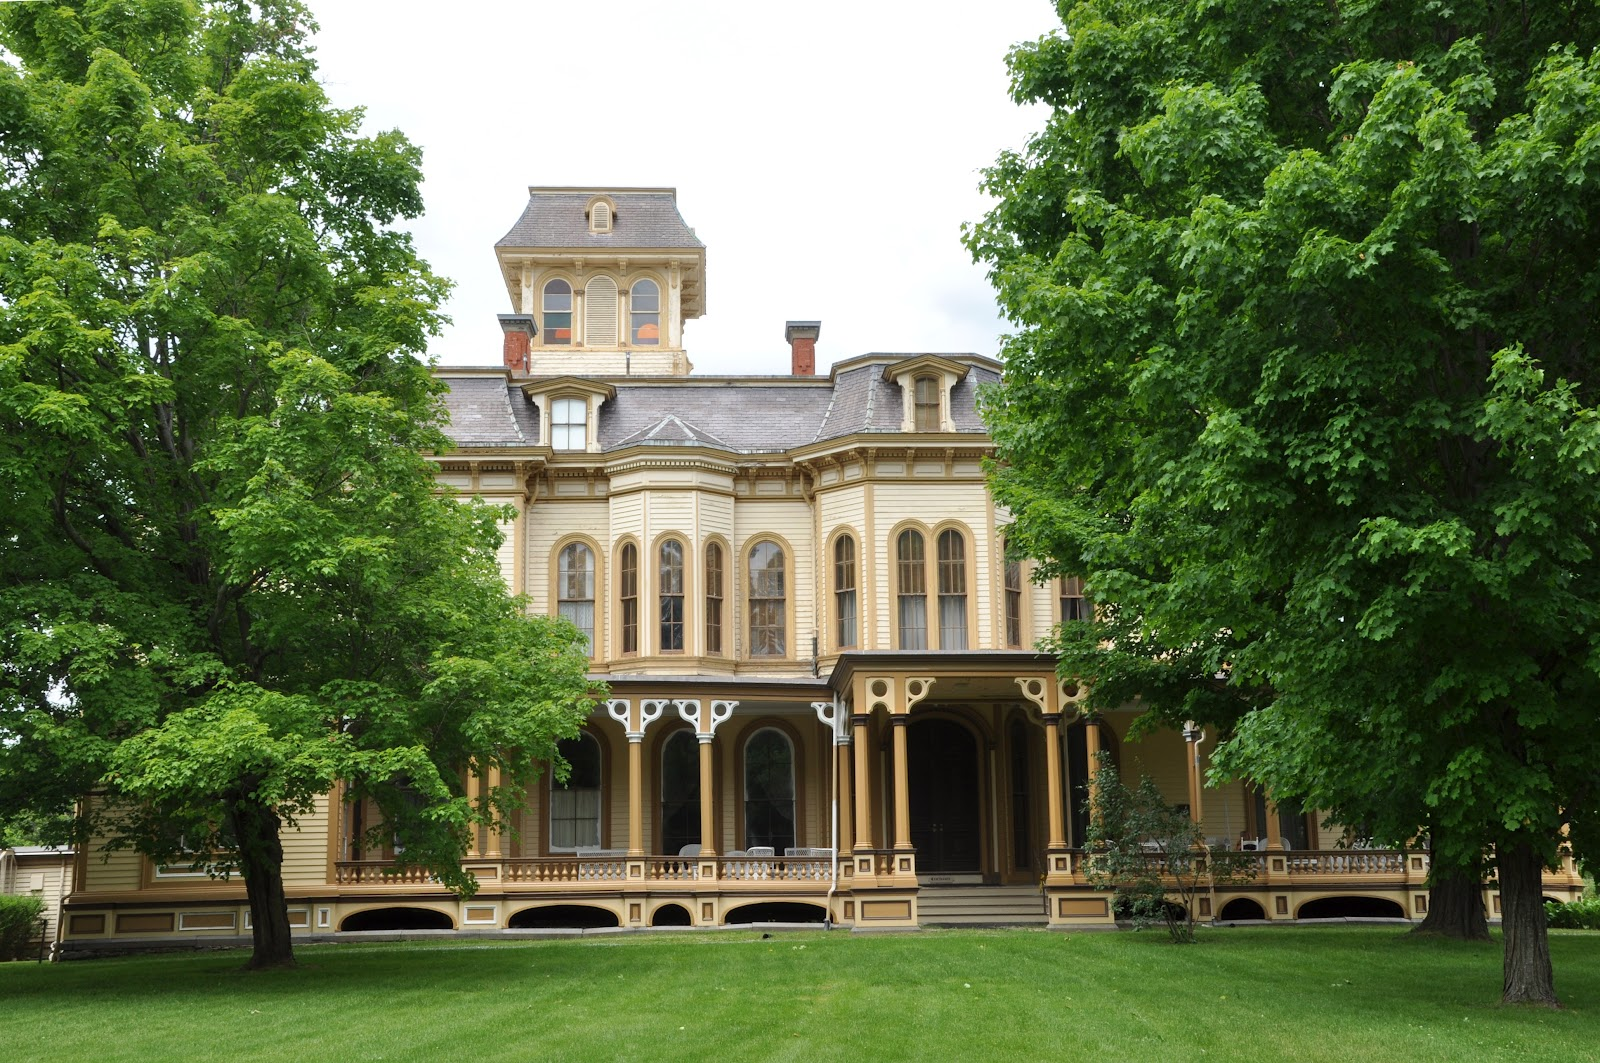 The Park-McCullough House truly is a Victorian masterpiece in the heart of New England.